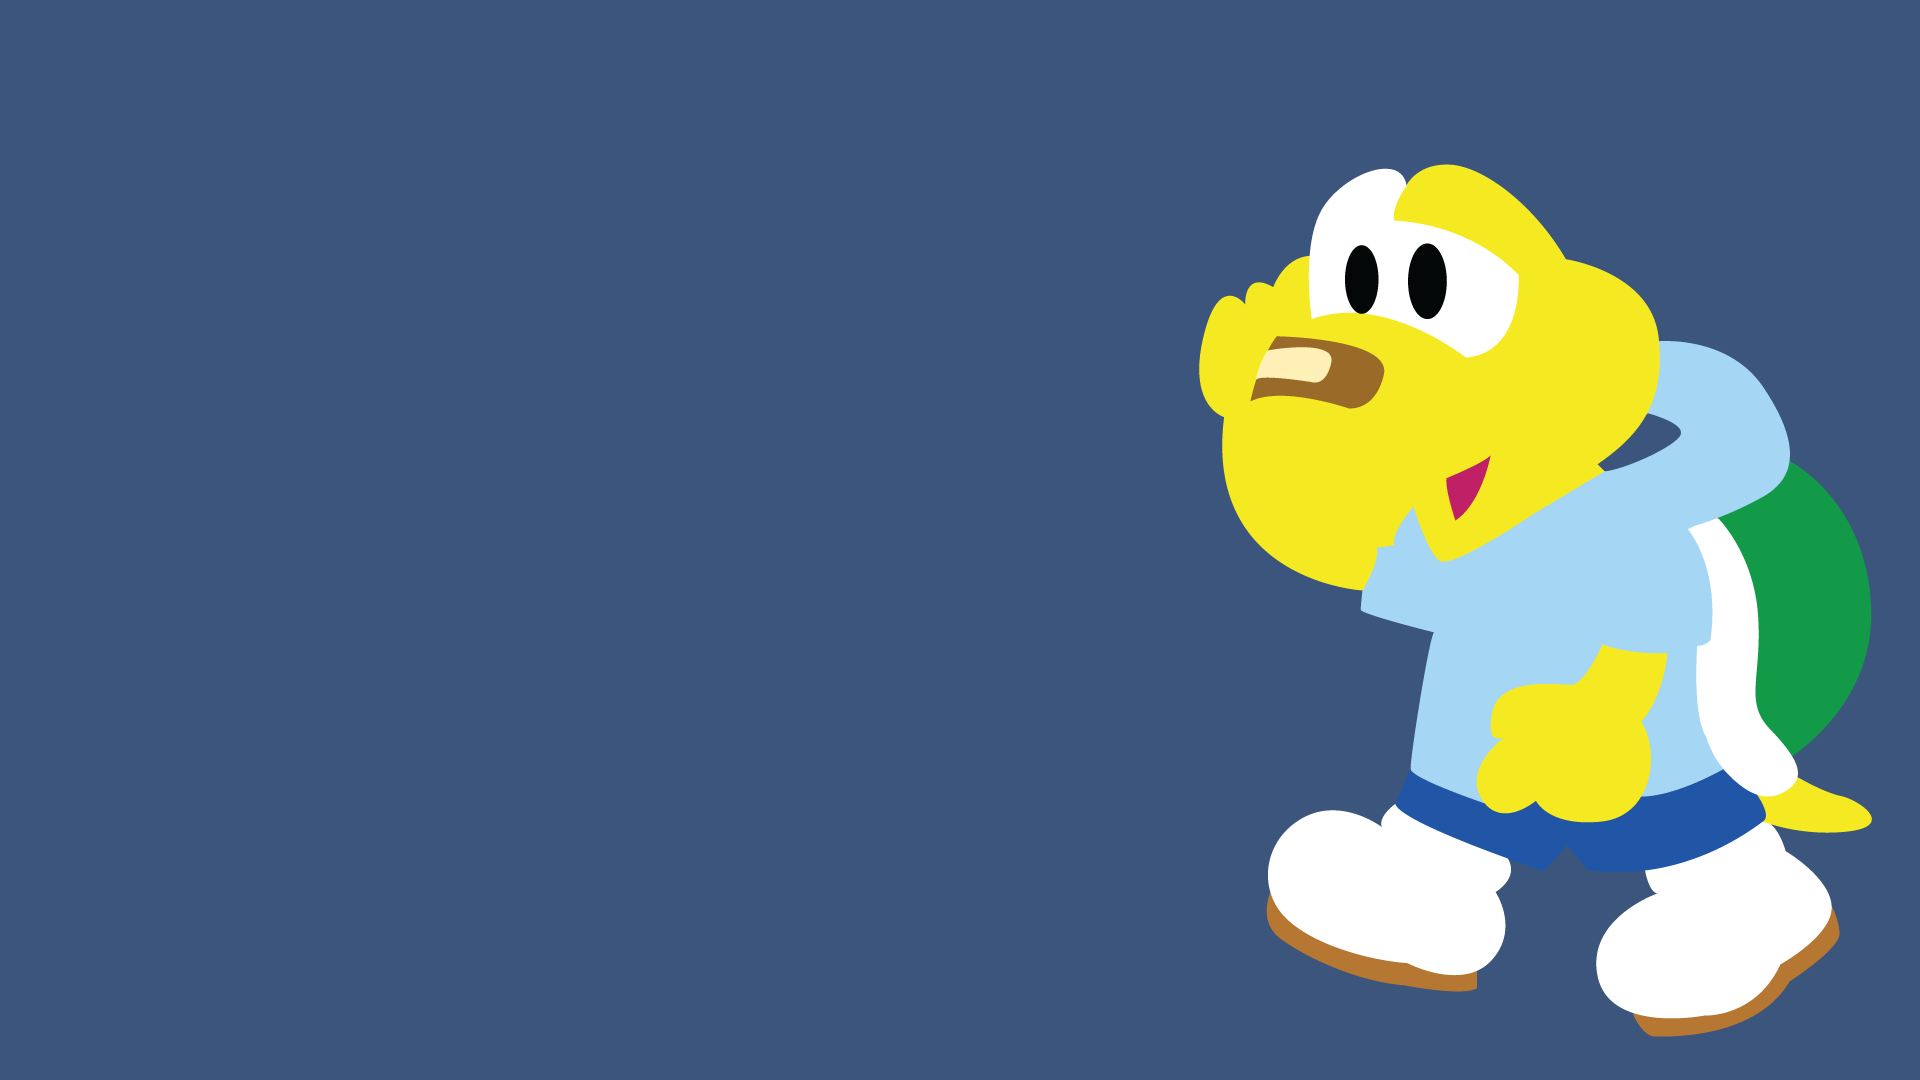 Adventure Time Anime Wallpaper Minimal Super Mario Wallpaper Let S Talk About